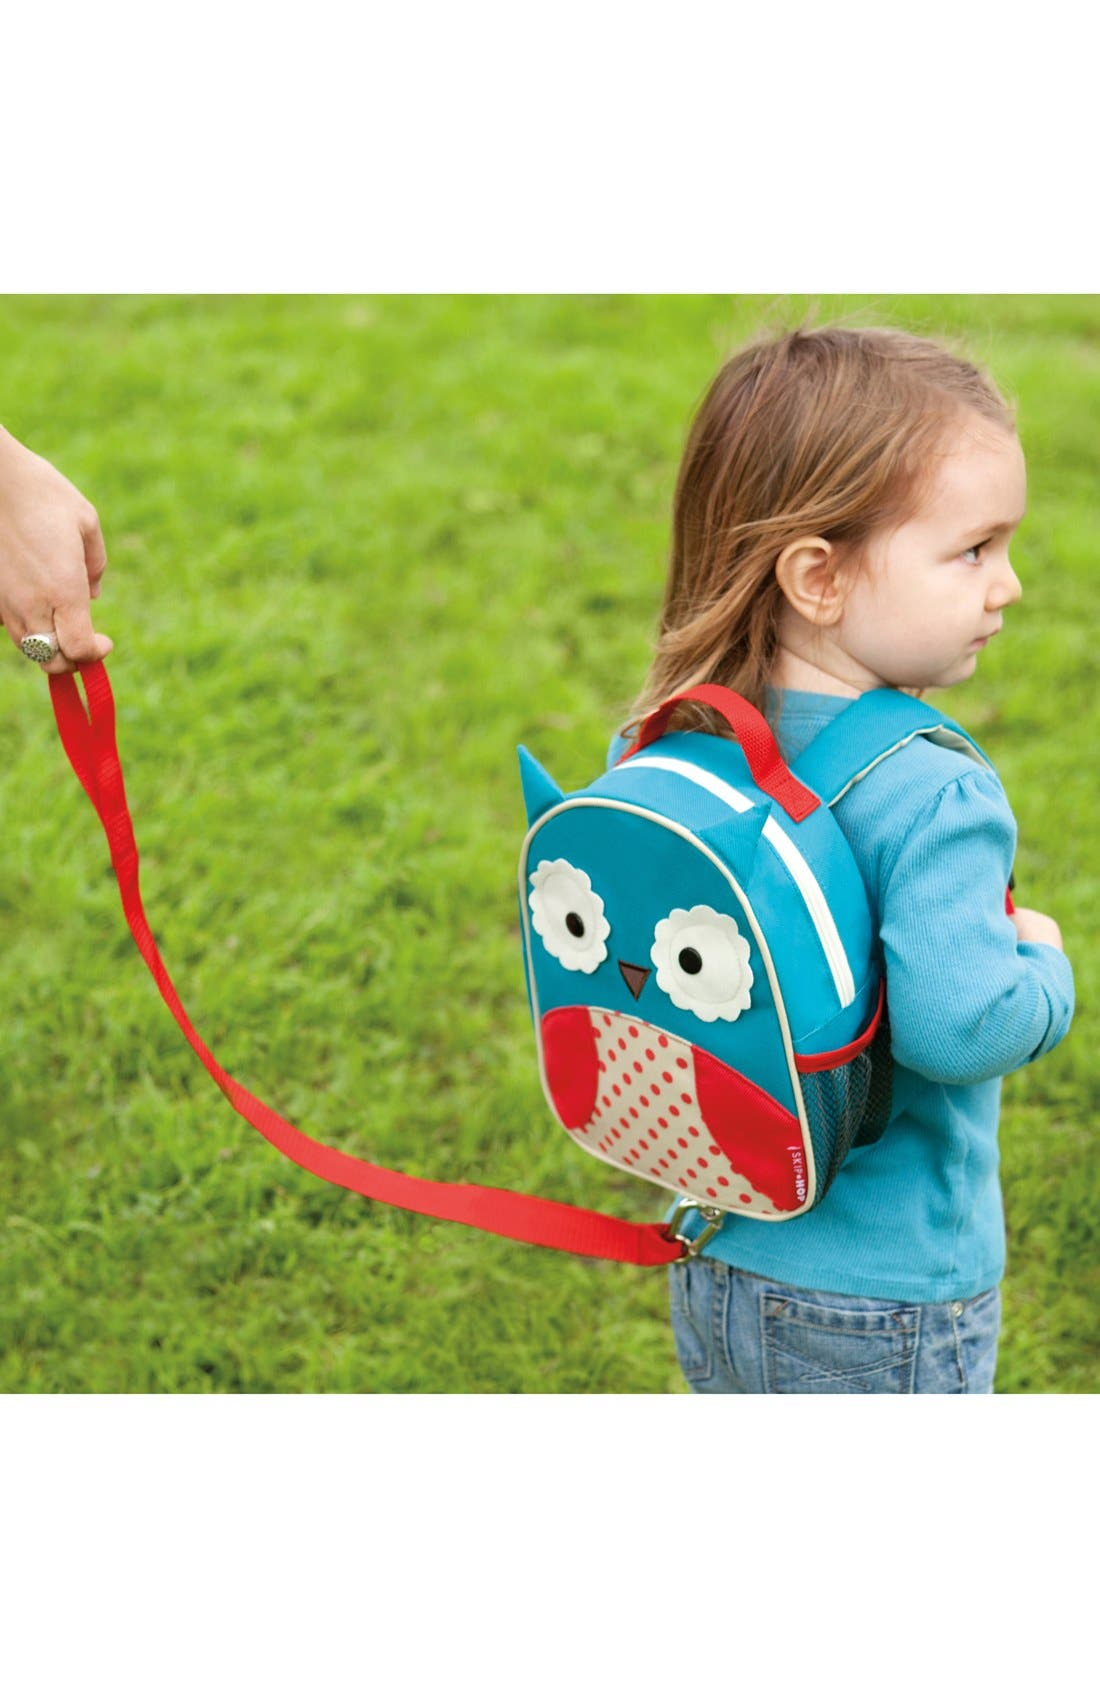 Monkey Zoo Safety Harness Backpack,                             Alternate thumbnail 6, color,                             OWL